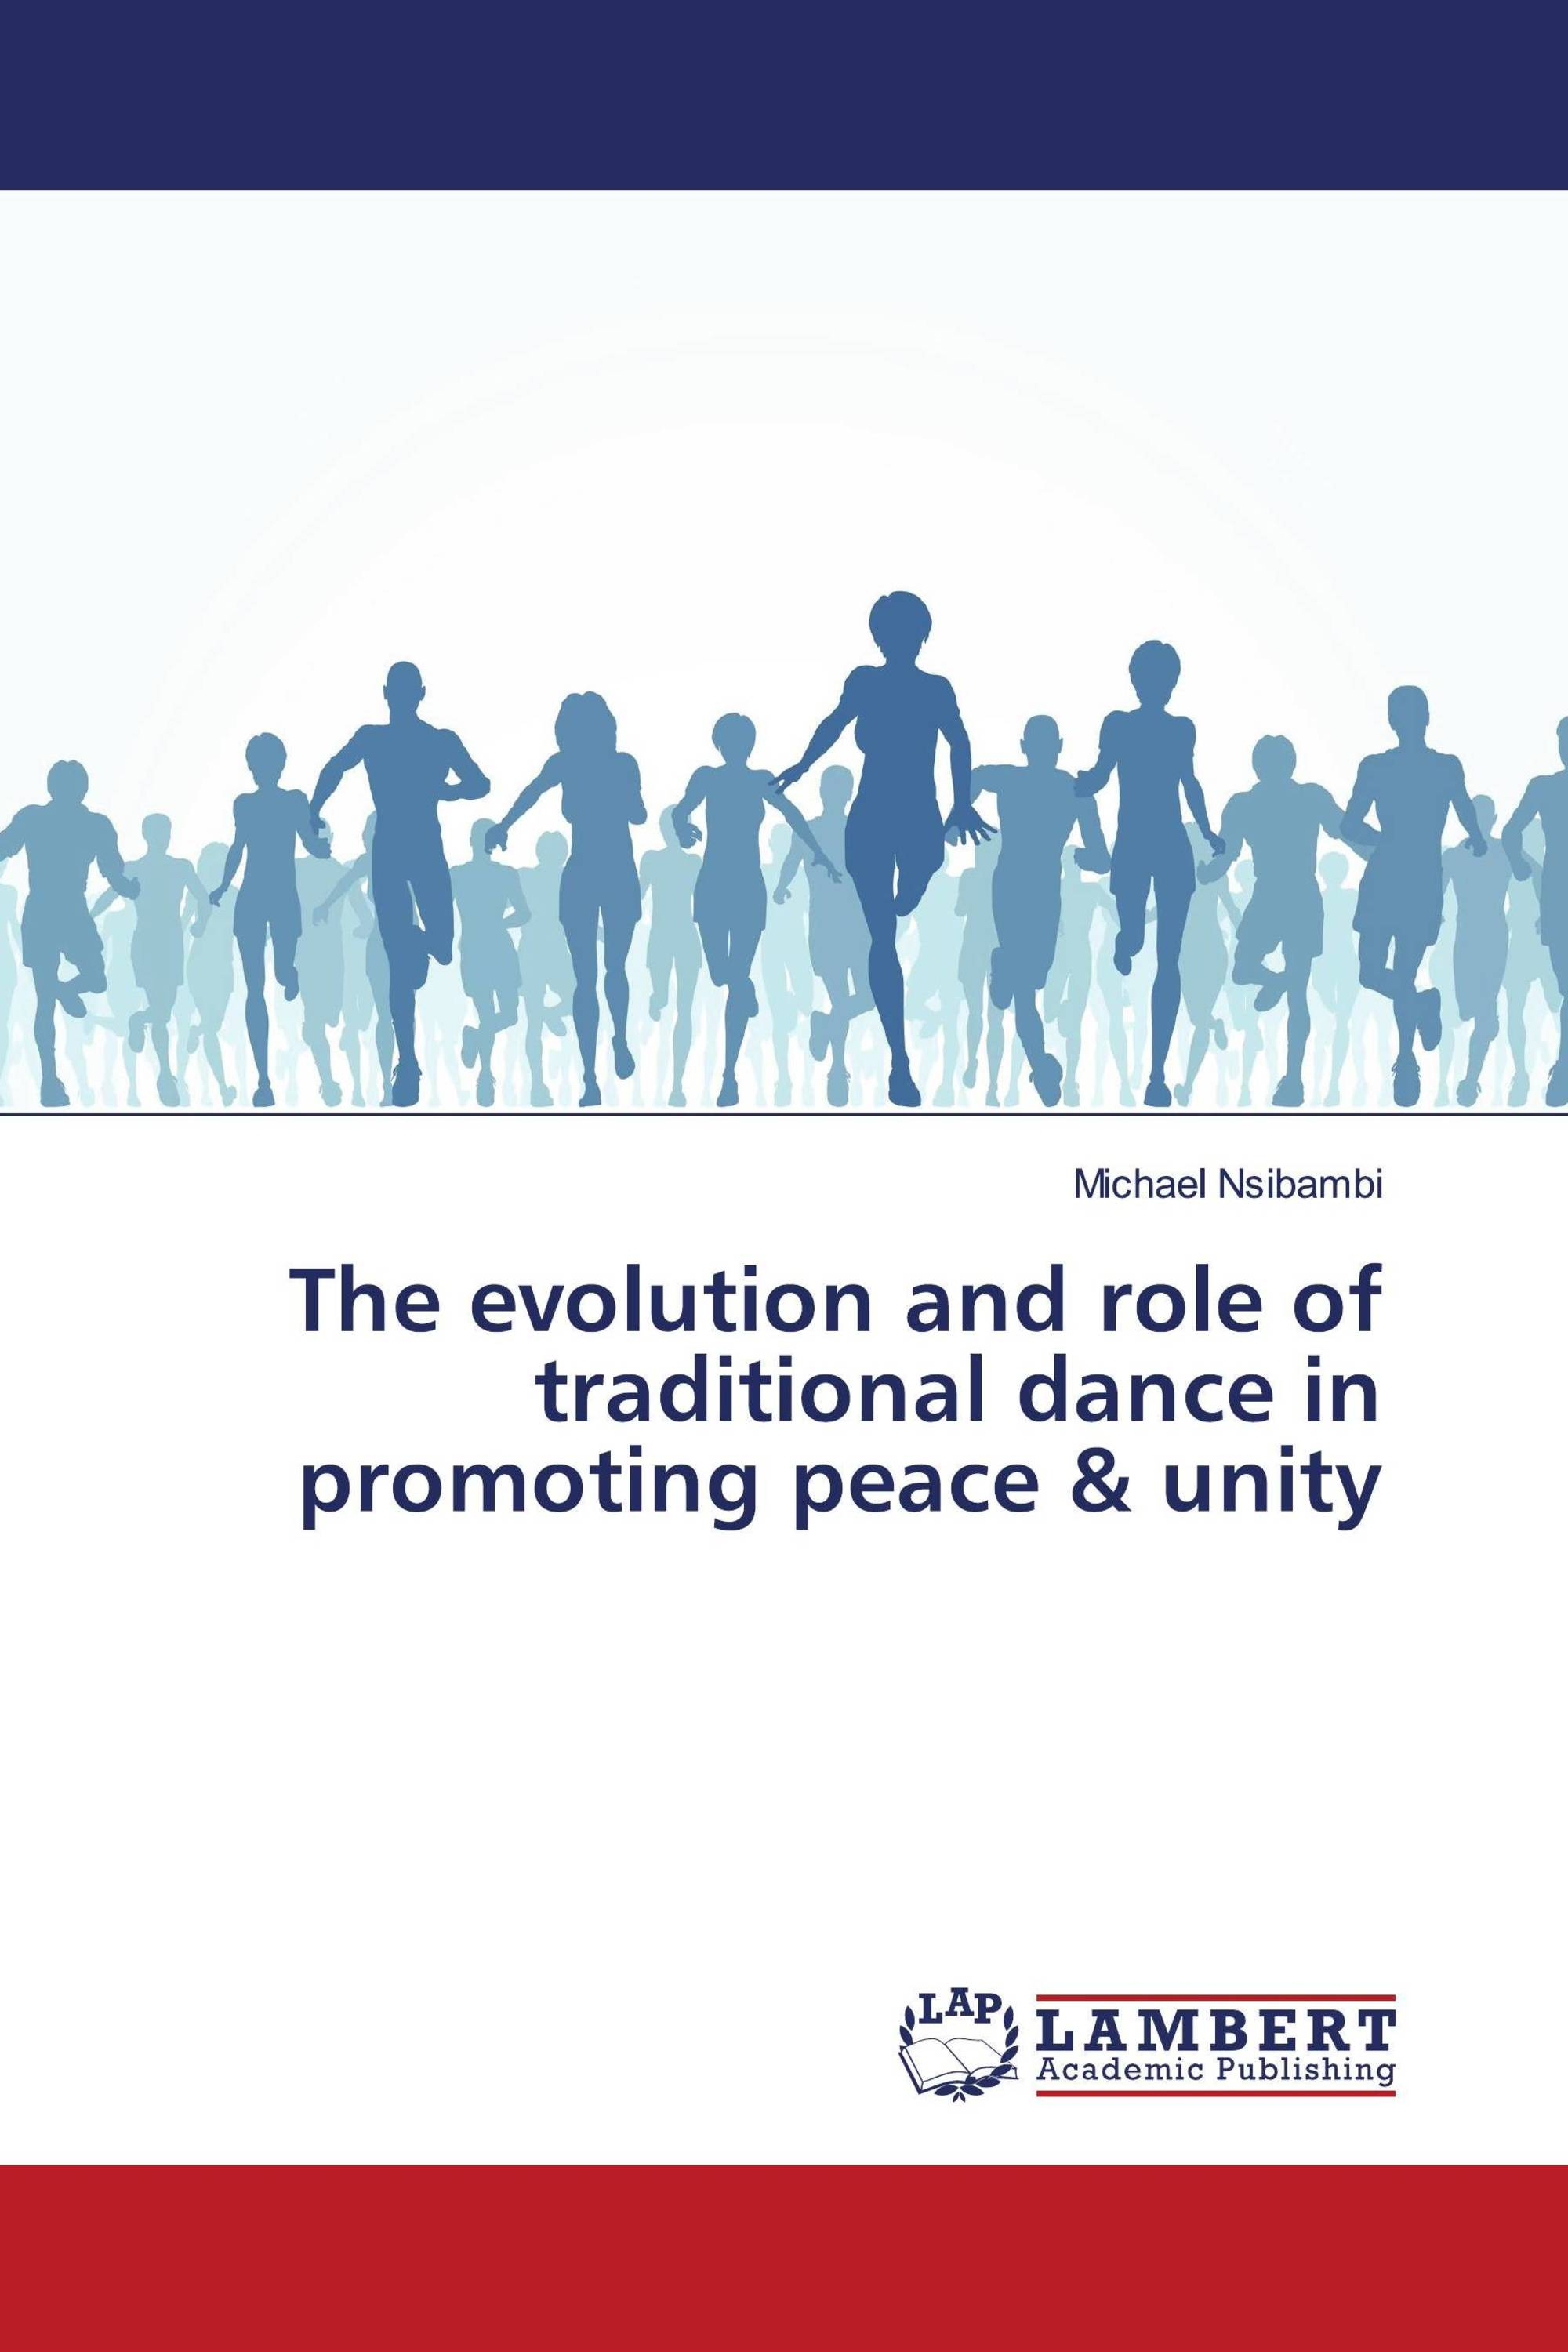 The evolution and role of traditional dance in promoting peace